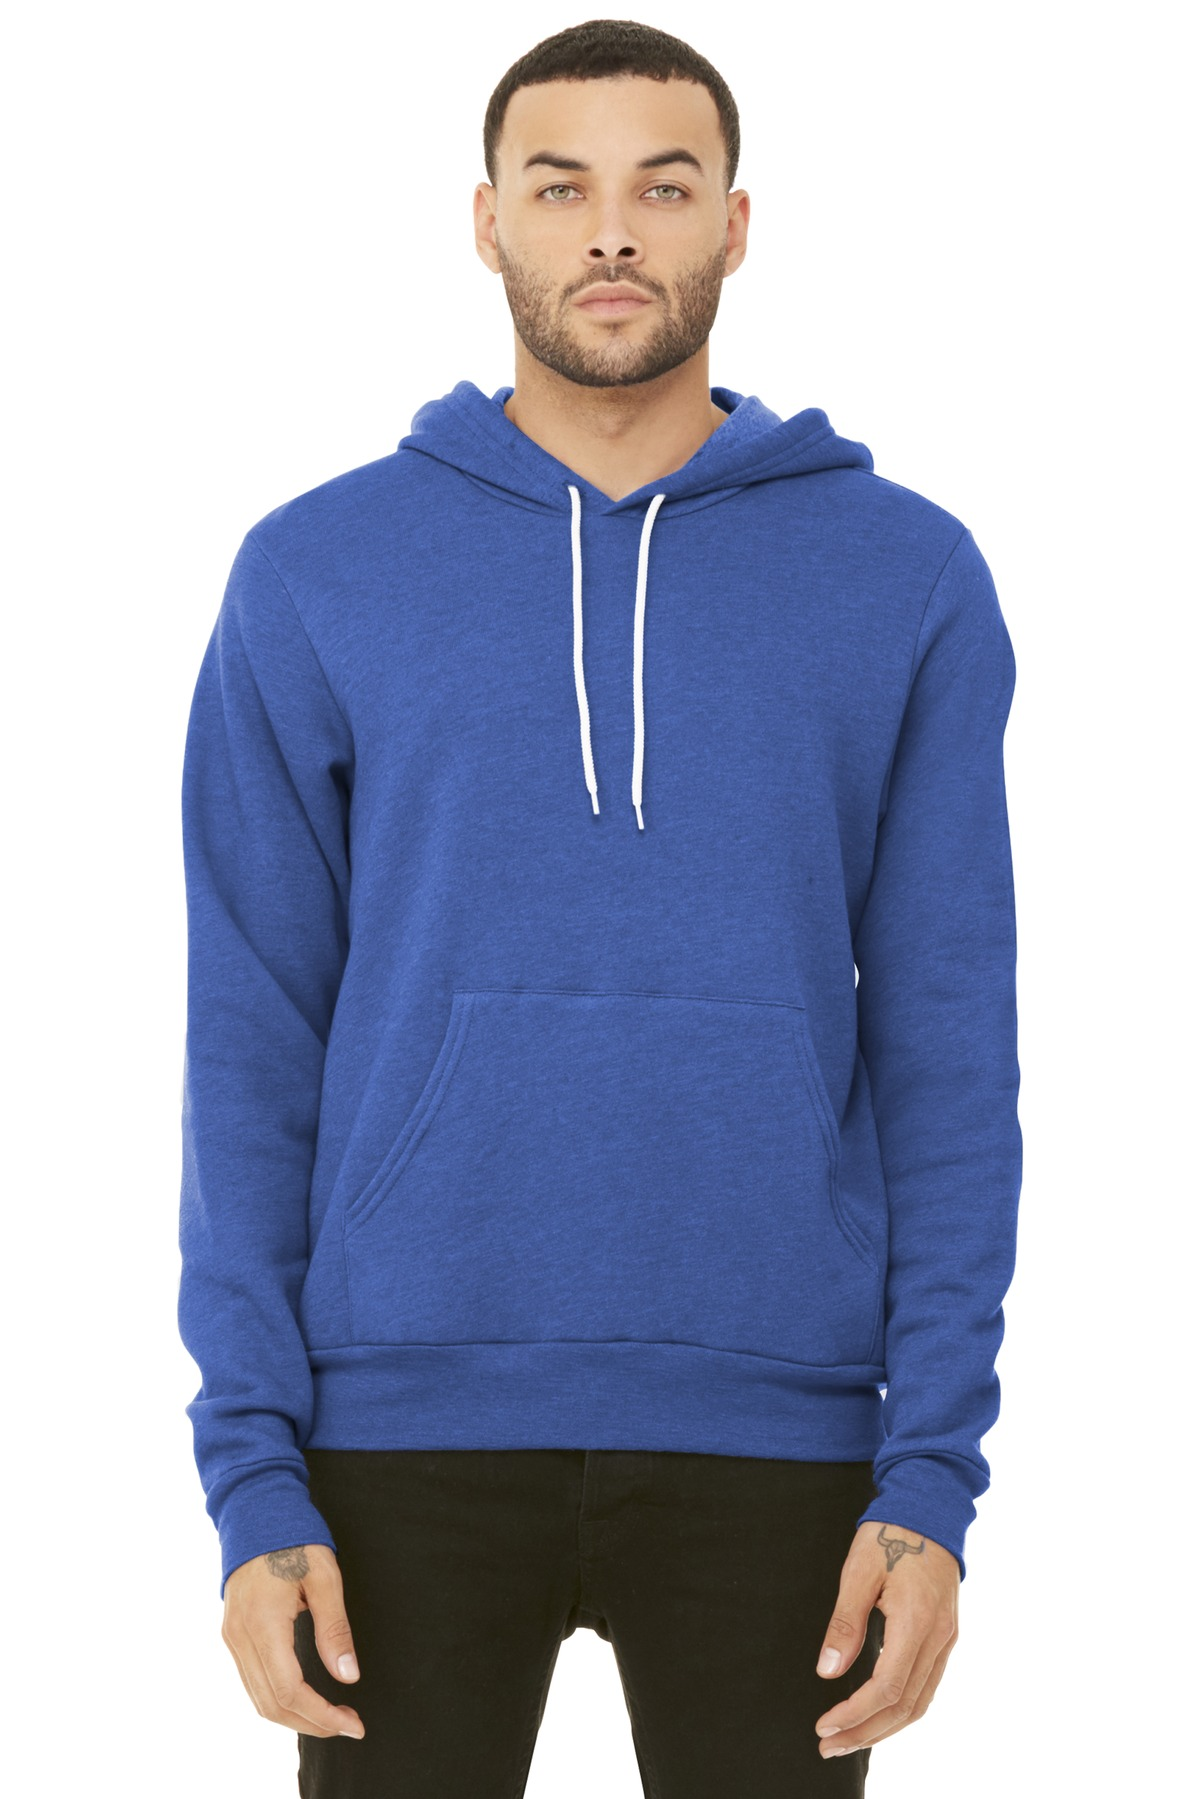 BELLA+CANVAS  ®  Unisex Sponge Fleece Pullover Hoodie. BC3719 - Heather True Royal